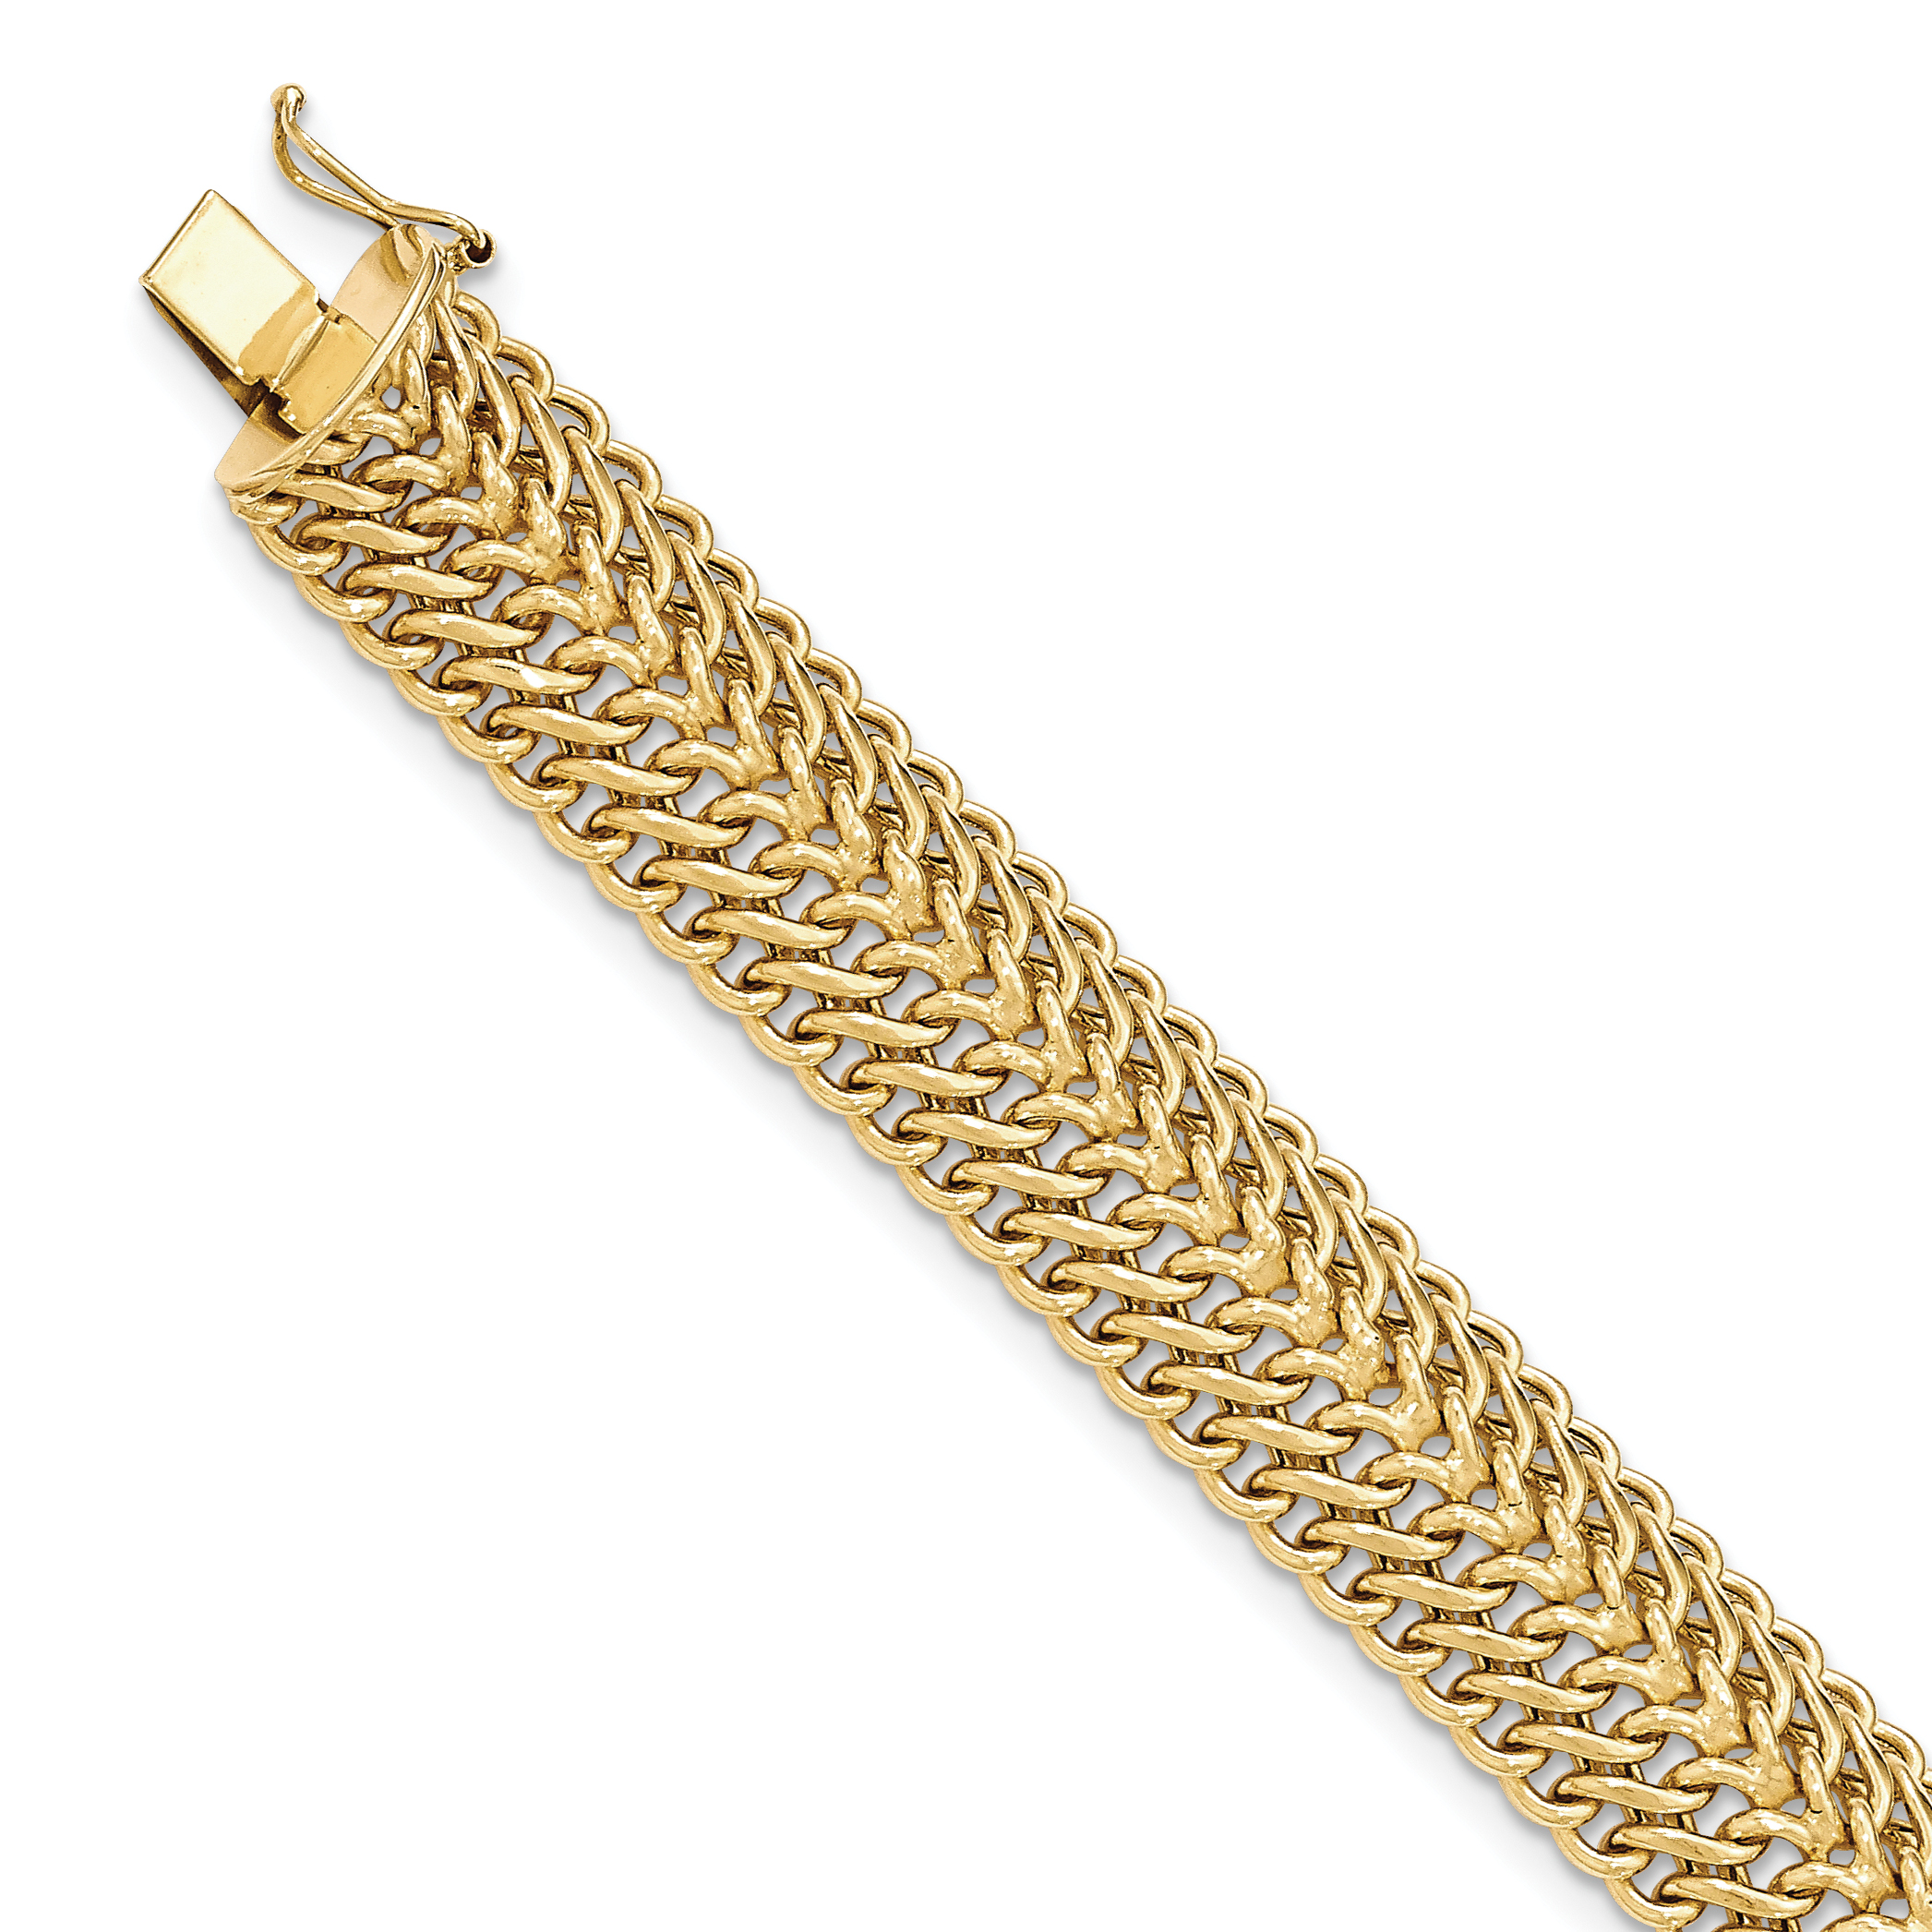 14k Yellow Gold 7.5 Inch Link Bracelet Fine Jewelry Gifts For Women For Her - image 4 of 4